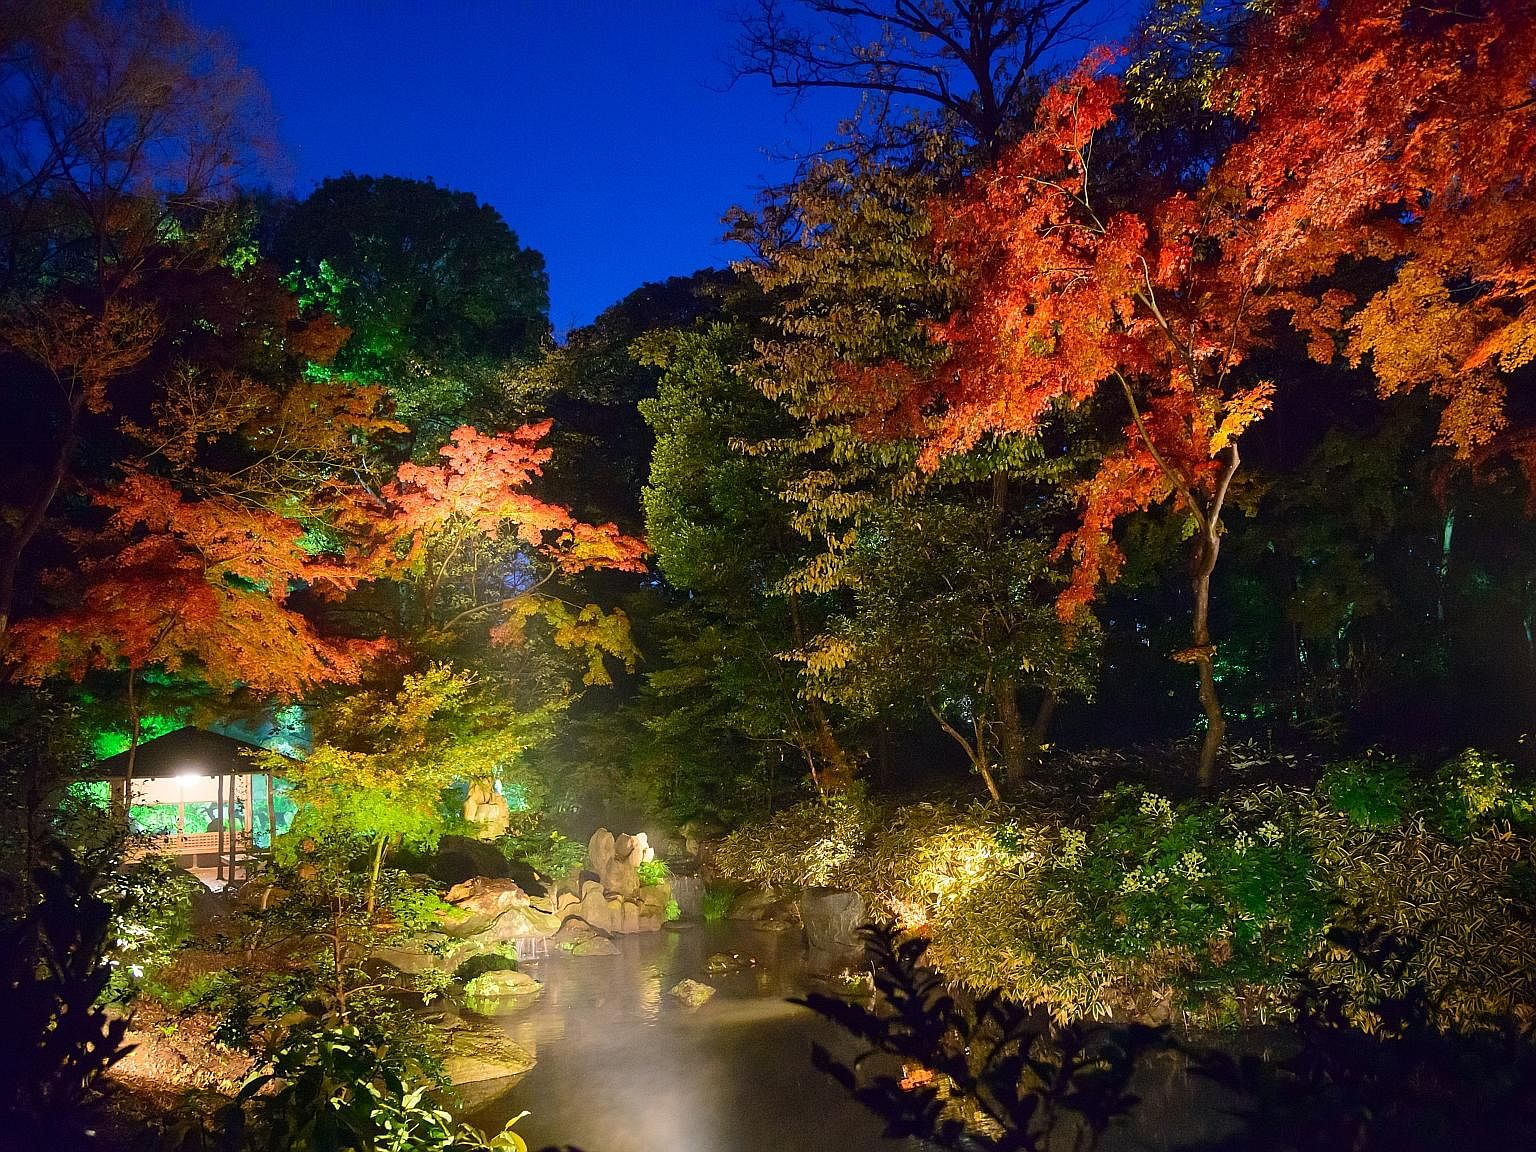 The trees surrounding the lake are lit up after sunset, giving Rikugi-en Garden an ethereal feel.